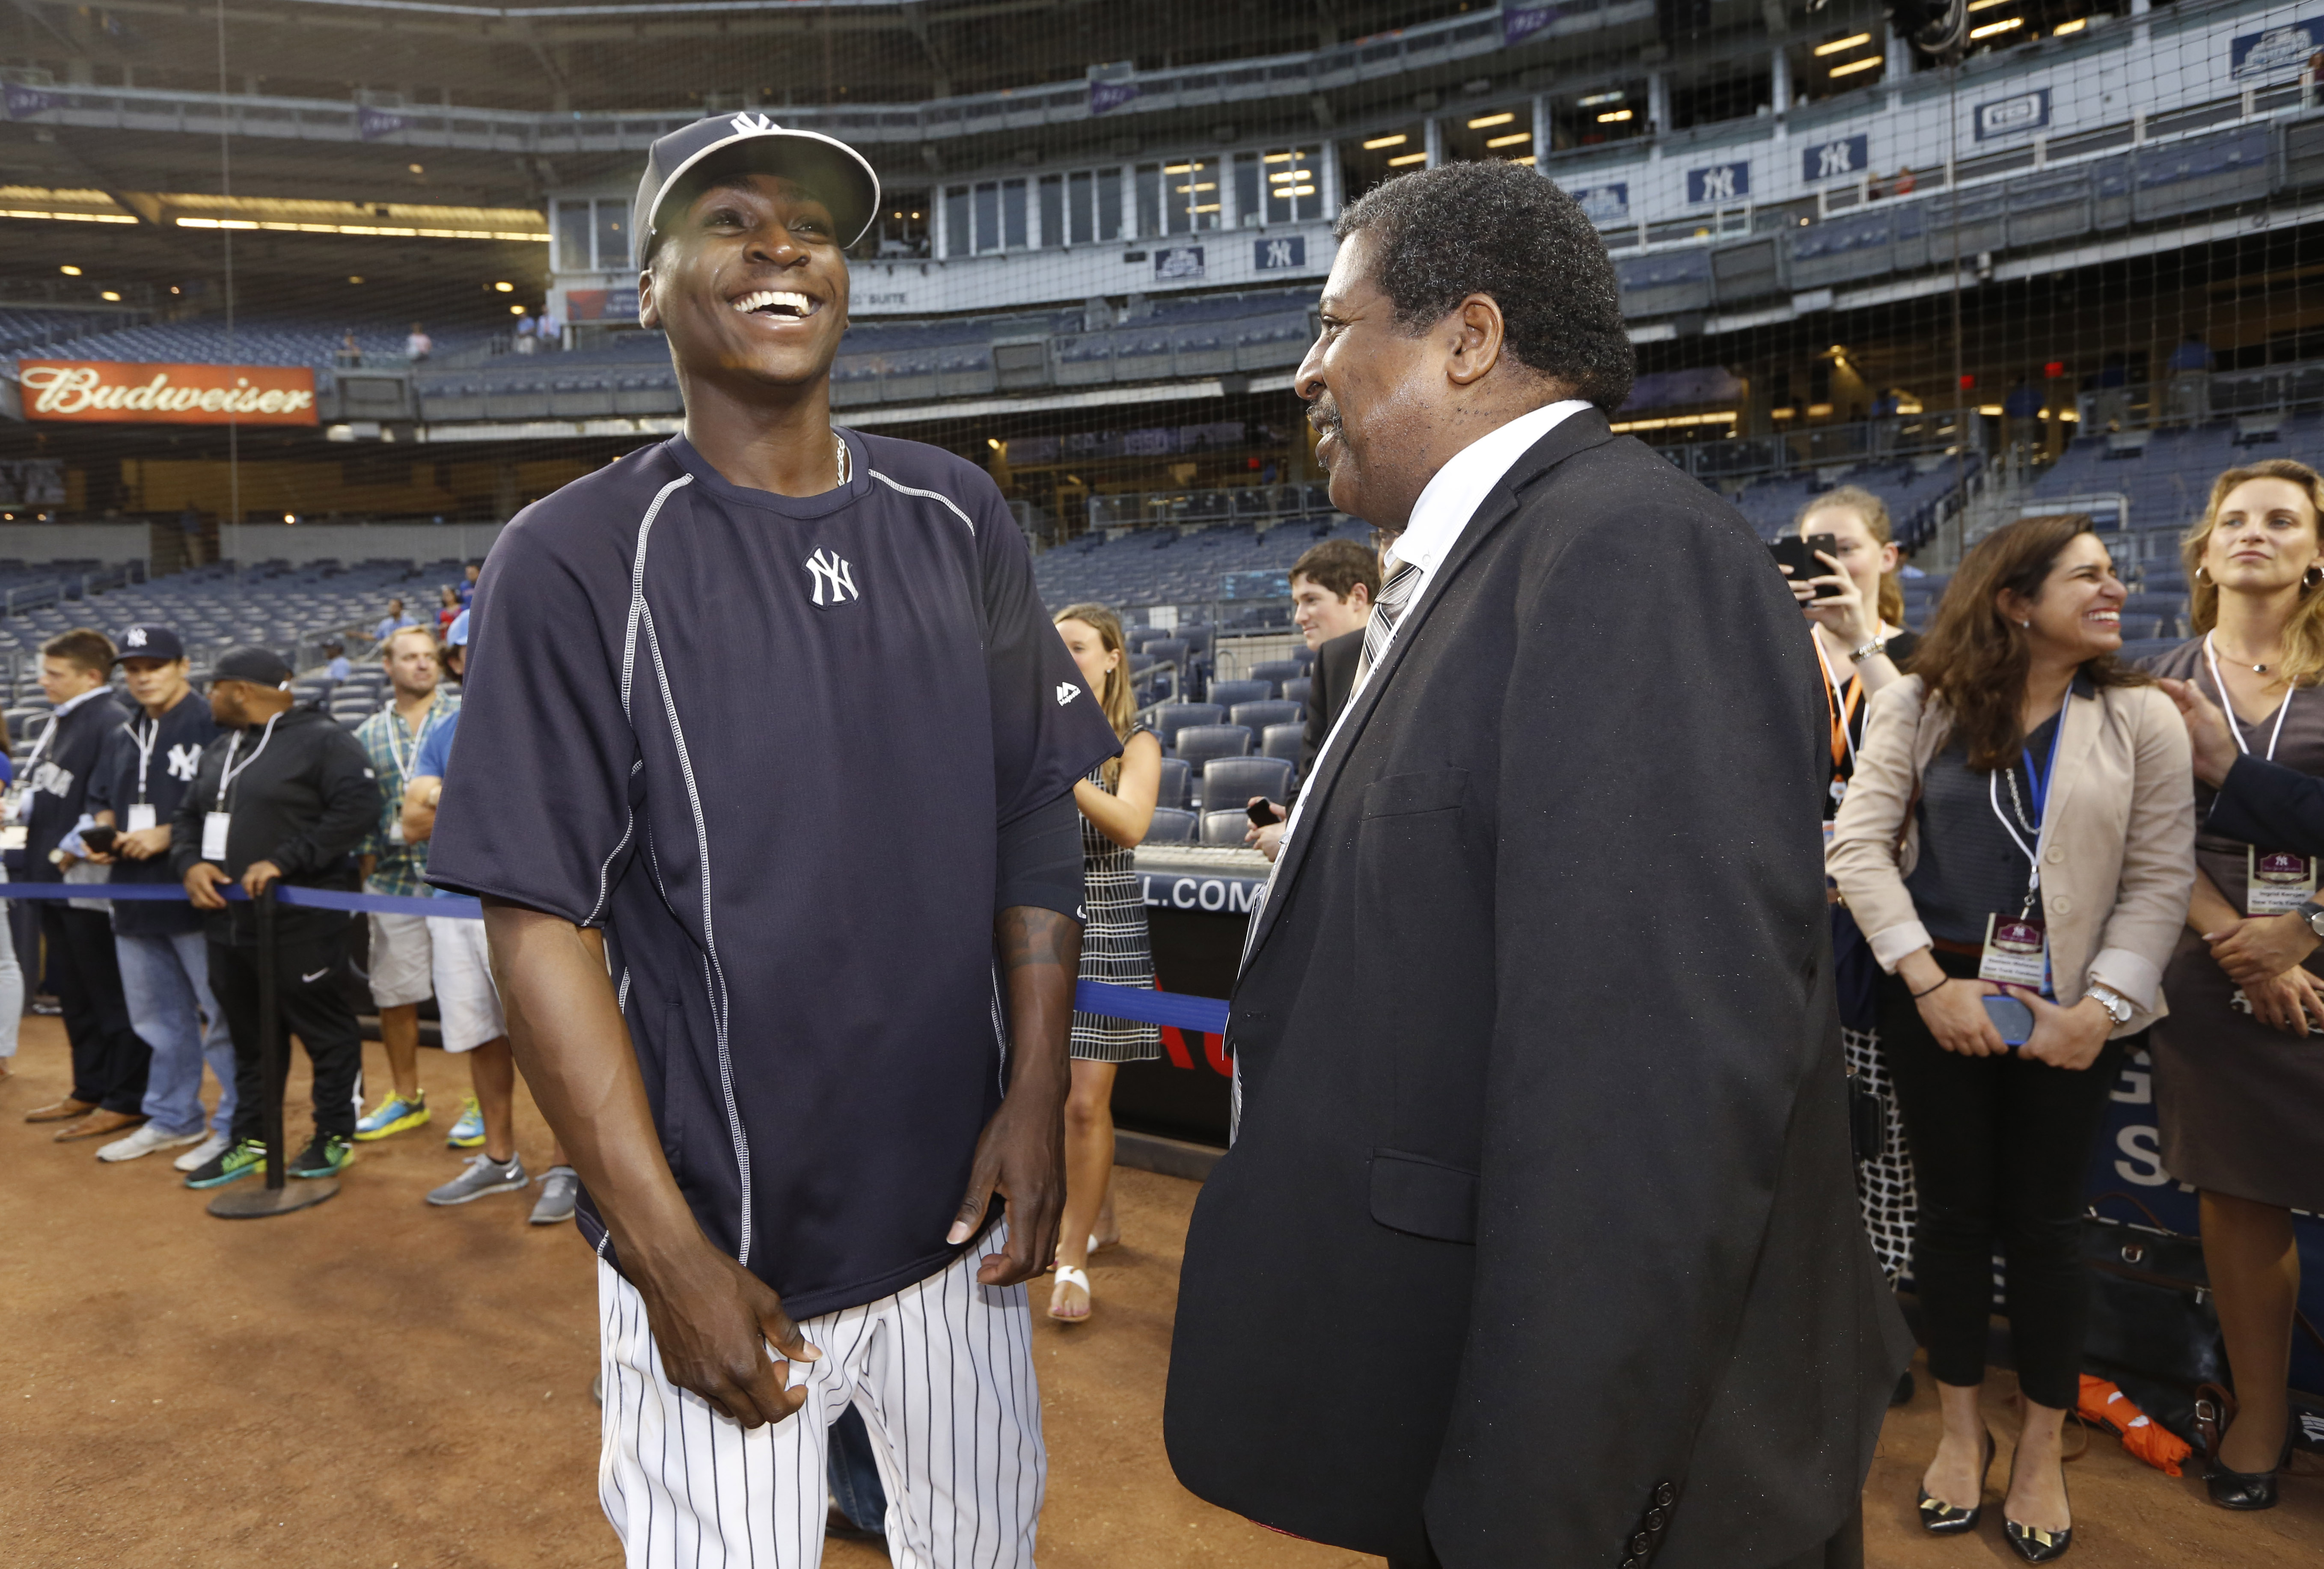 New York Yankees shortstop Didi Gregorius, left, of Curacao, meets Curacao Prime Minister Ben Whiteman on the field before a baseball game against the Boston Red Sox at Yankee Stadium in New York, Tuesday, Sept. 29, 2015. Whiteman is in New york attending